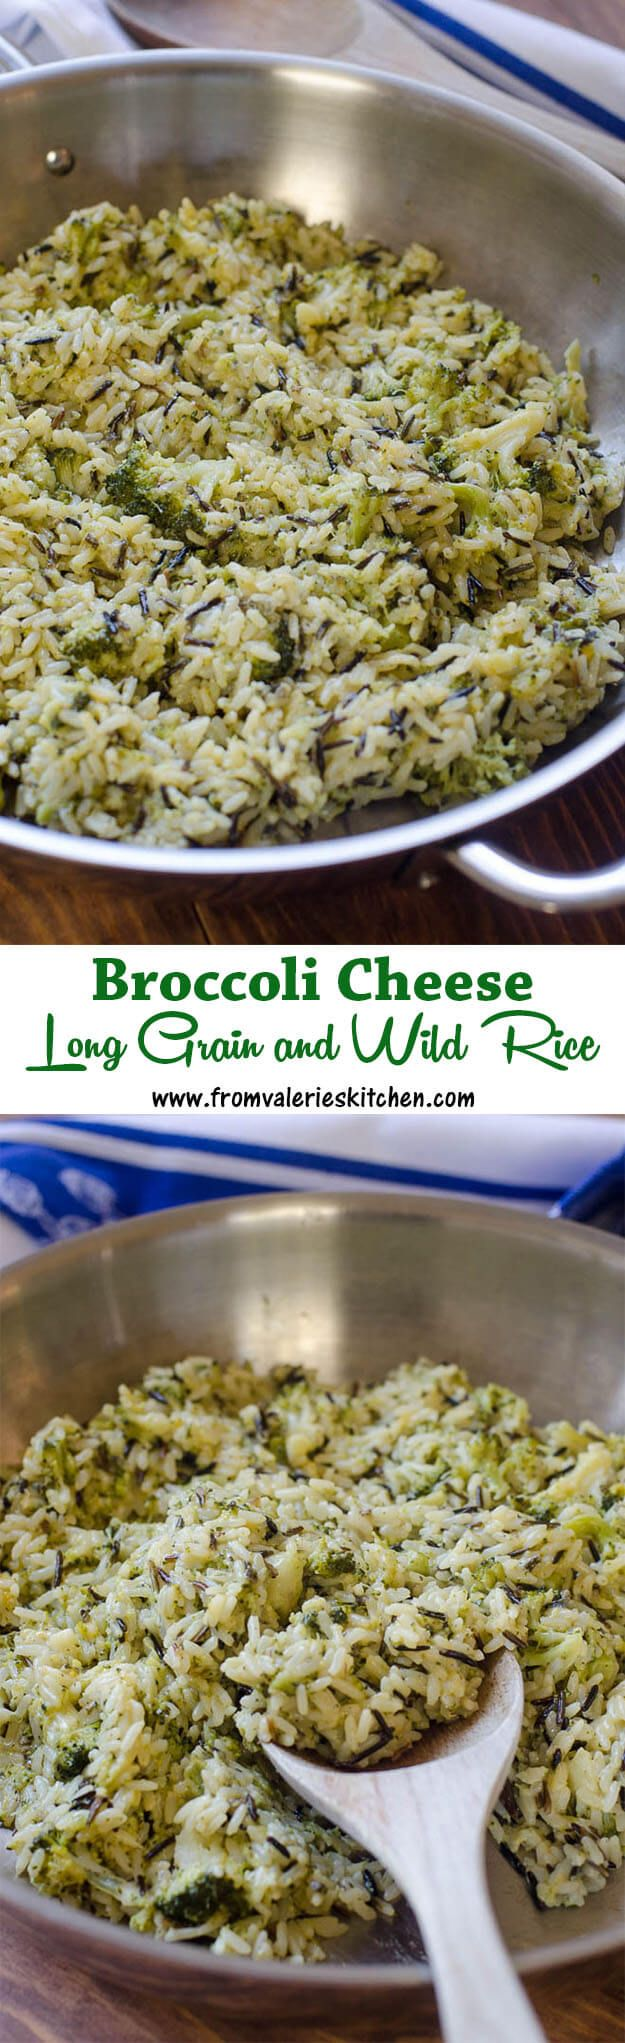 EASY 30 minute Broccoli Cheese Long Grain and Wild Rice! ~ http://www.fromvalerieskitchen.com: